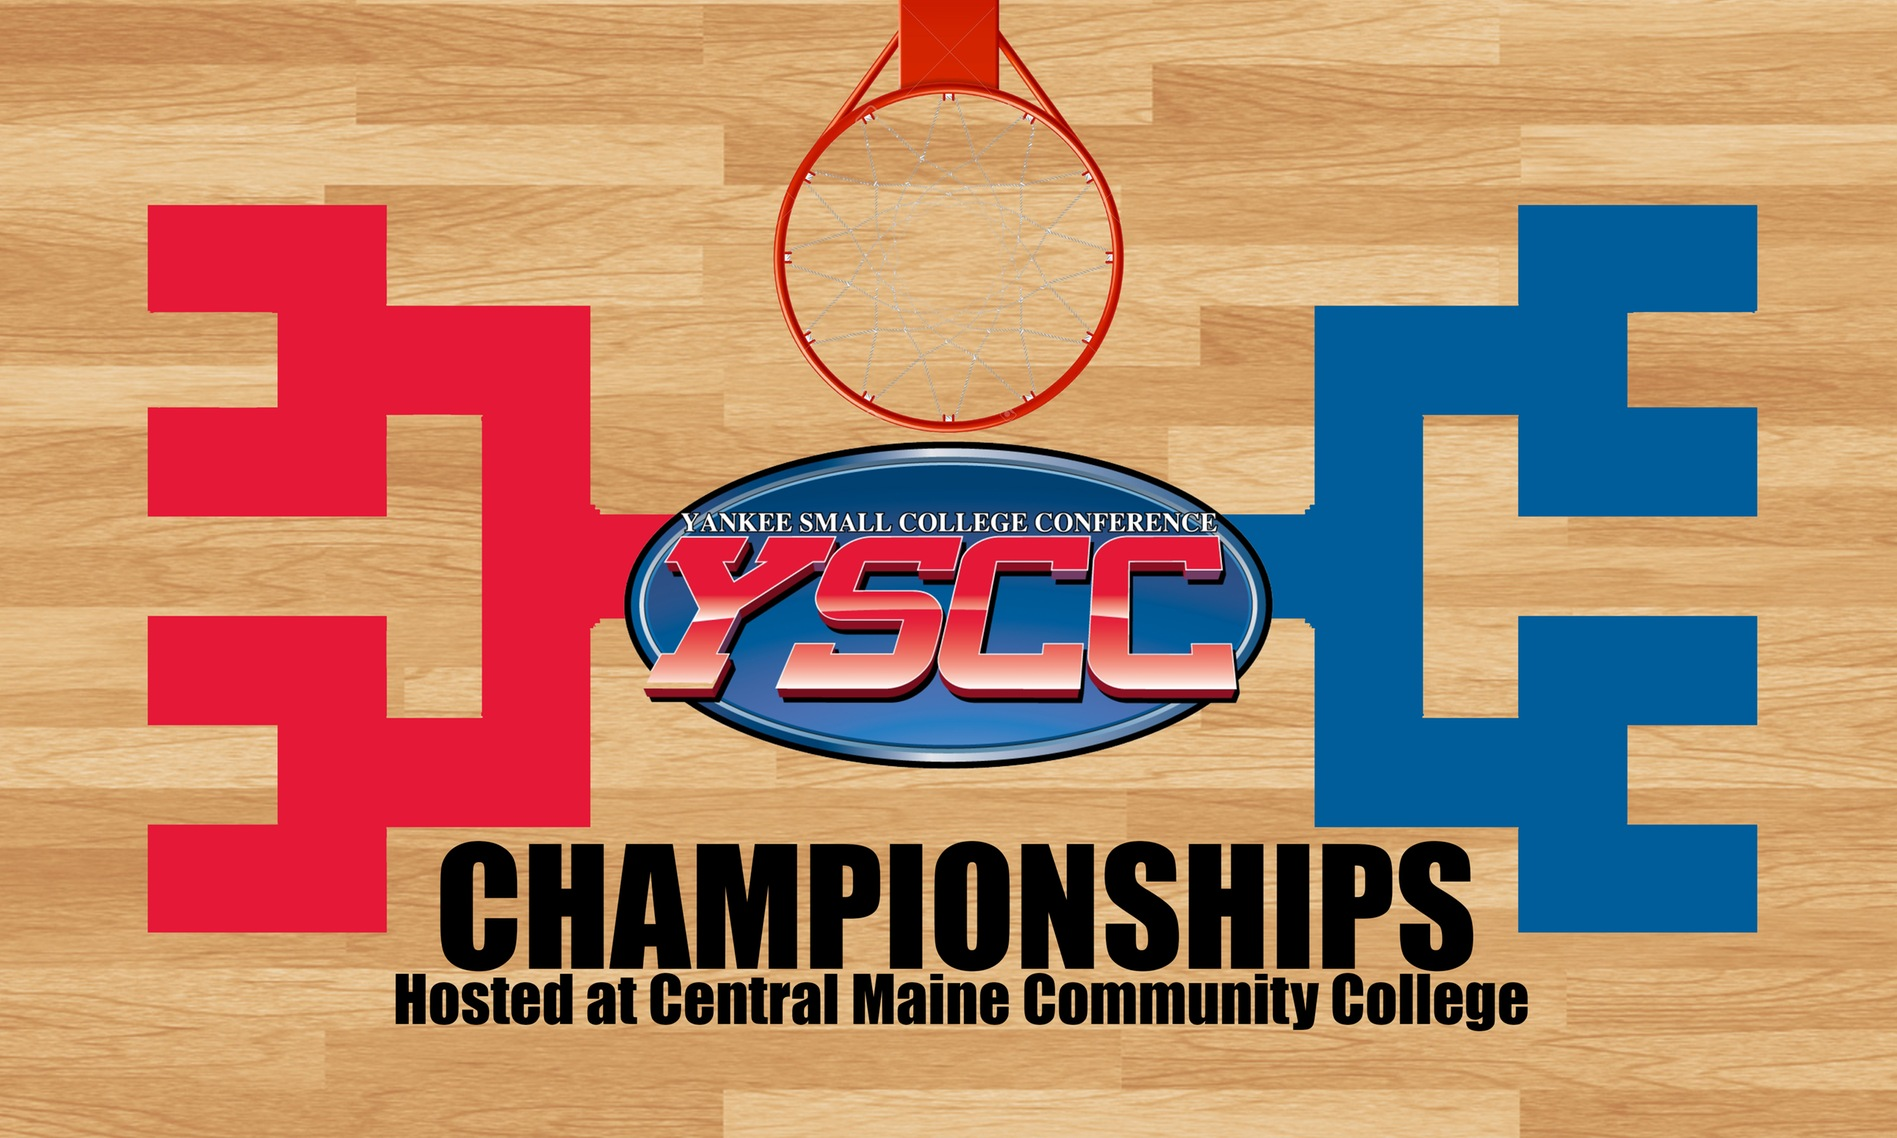 YSCC playoffs kick off this weekend